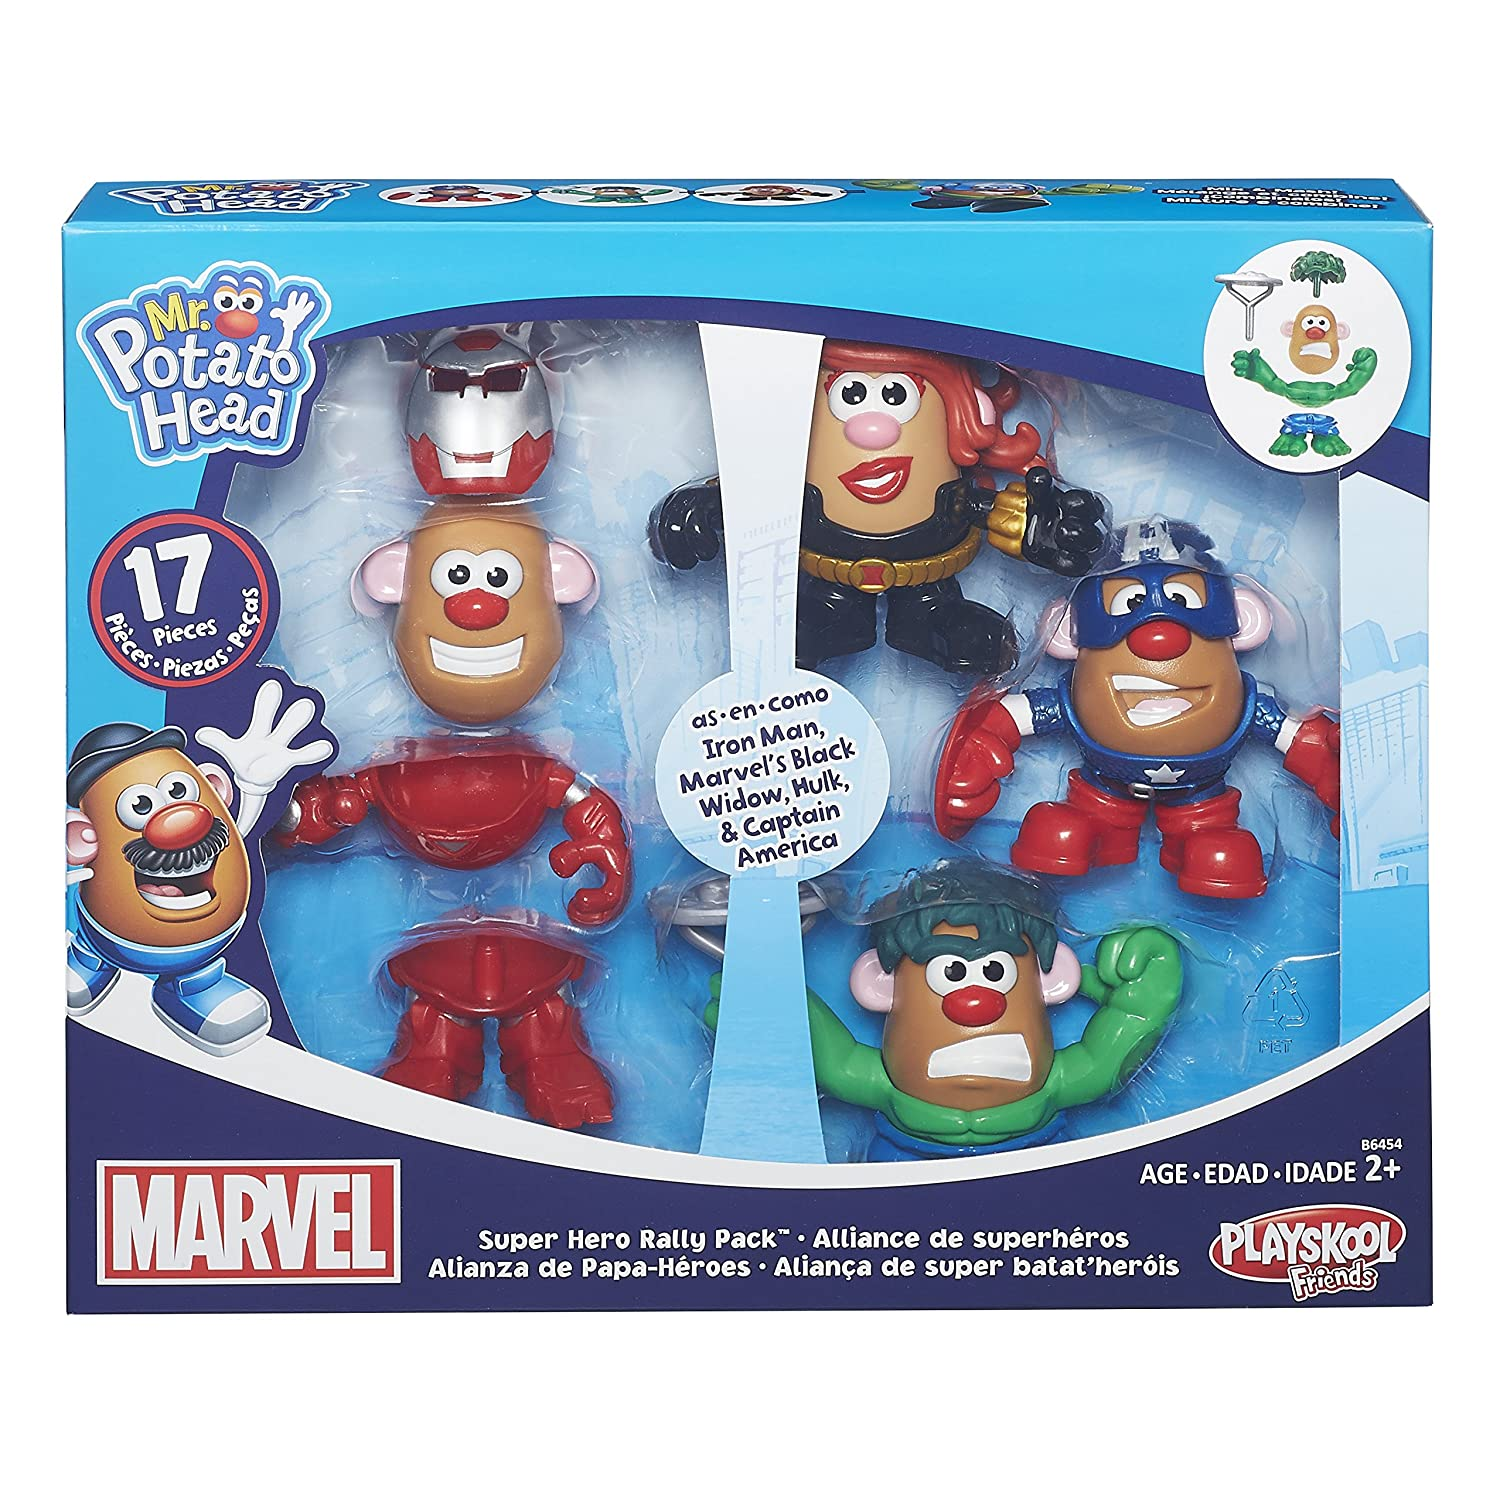 Playskool Friends Mr. Potato Head Marvel Super Rally Pack by Mr Potato Head: Amazon.es: Juguetes y juegos